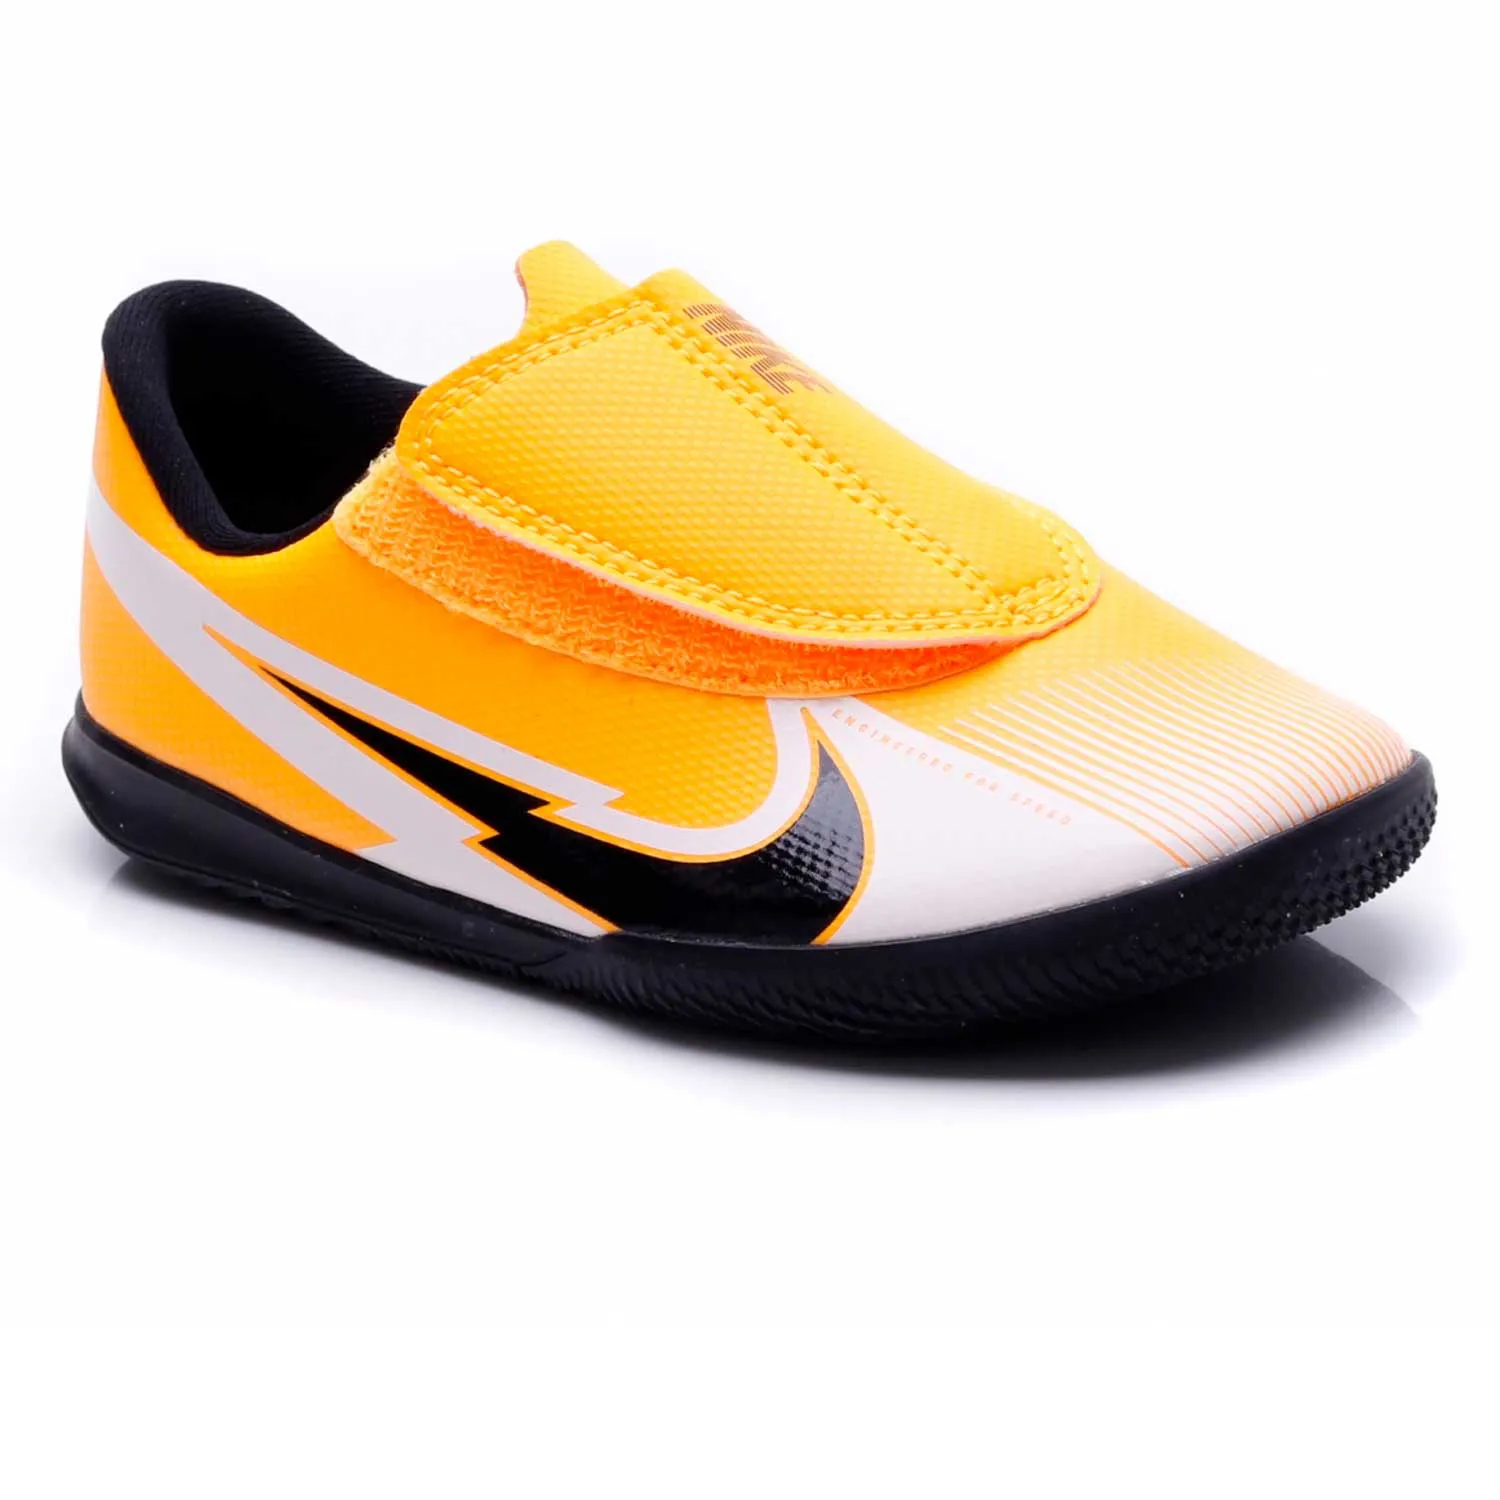 CHUTEIRA JR VAPOR 13 CLUB IC PS NIKE REF:AT8170801 26/30